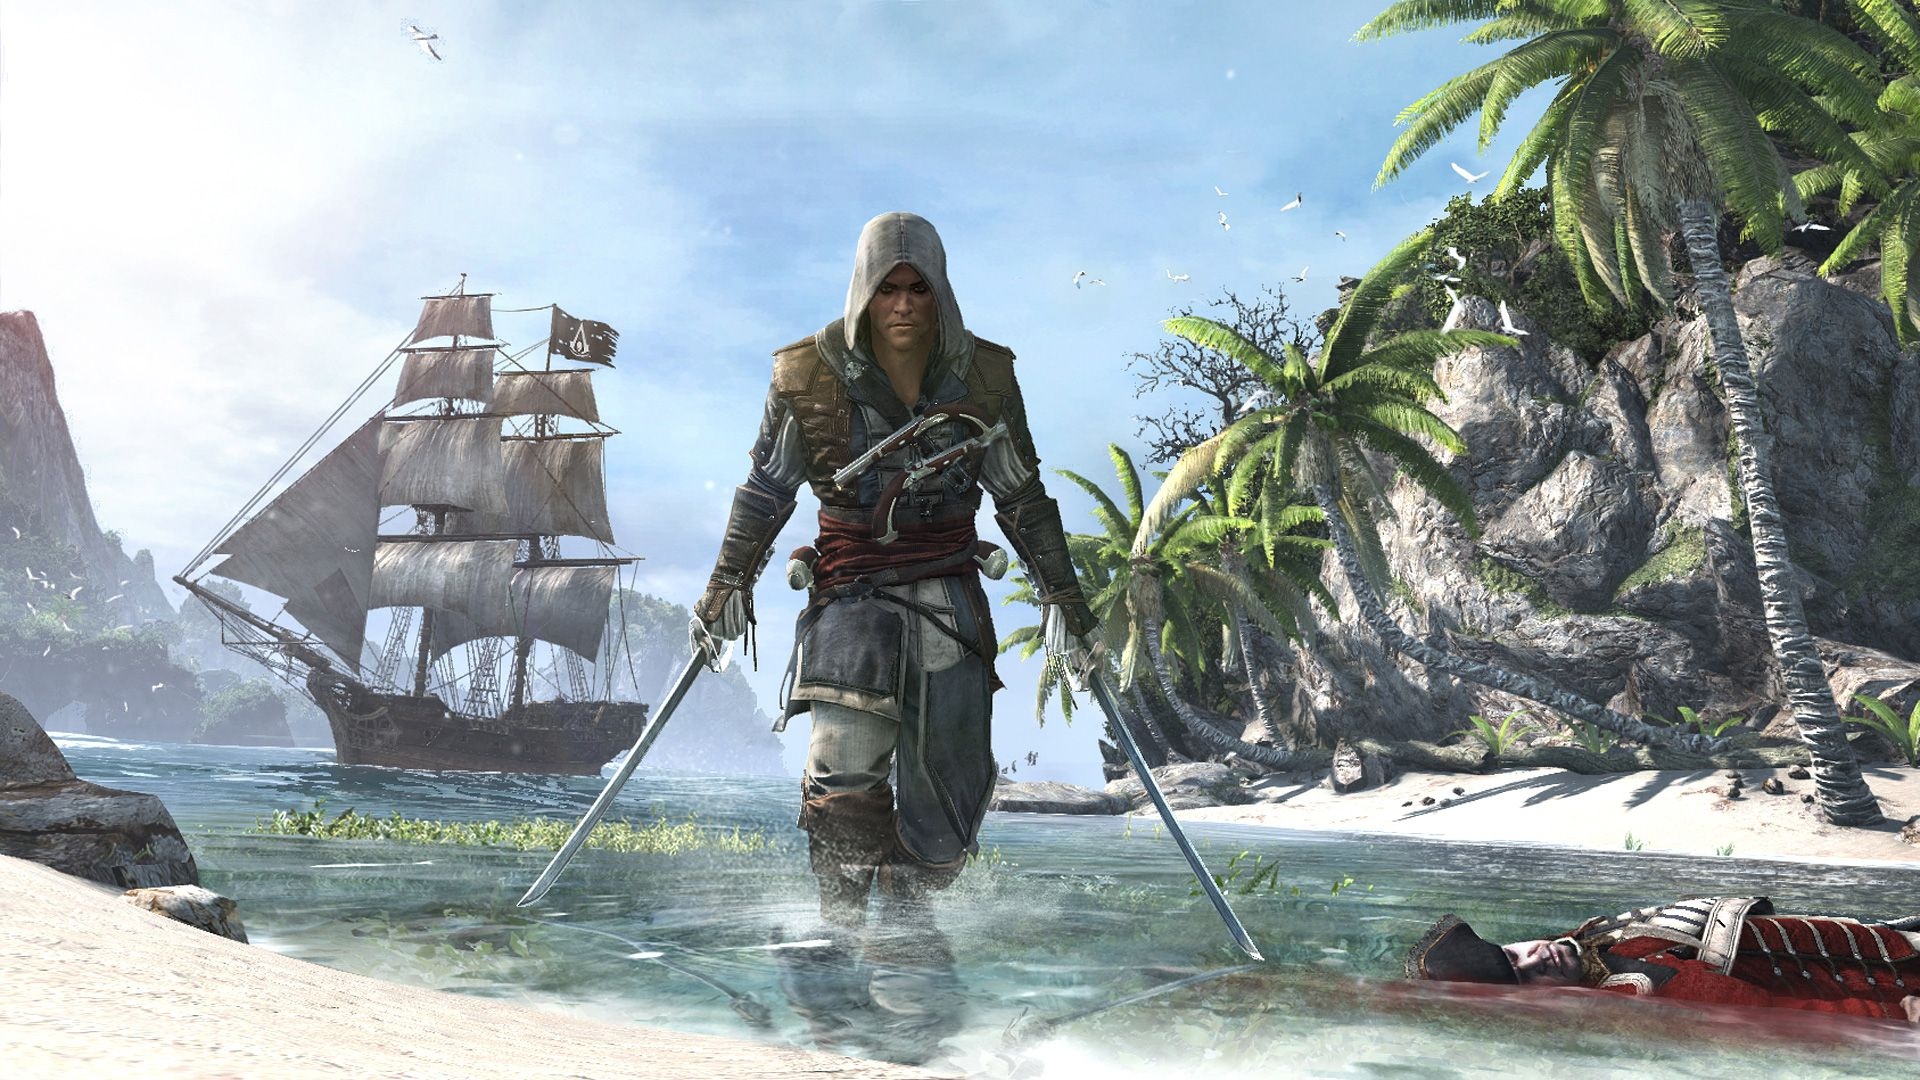 Girls on Games: *VIDEOS* Assassin's Creed IV: Black Flag World Premiere Trailers and Screenshots